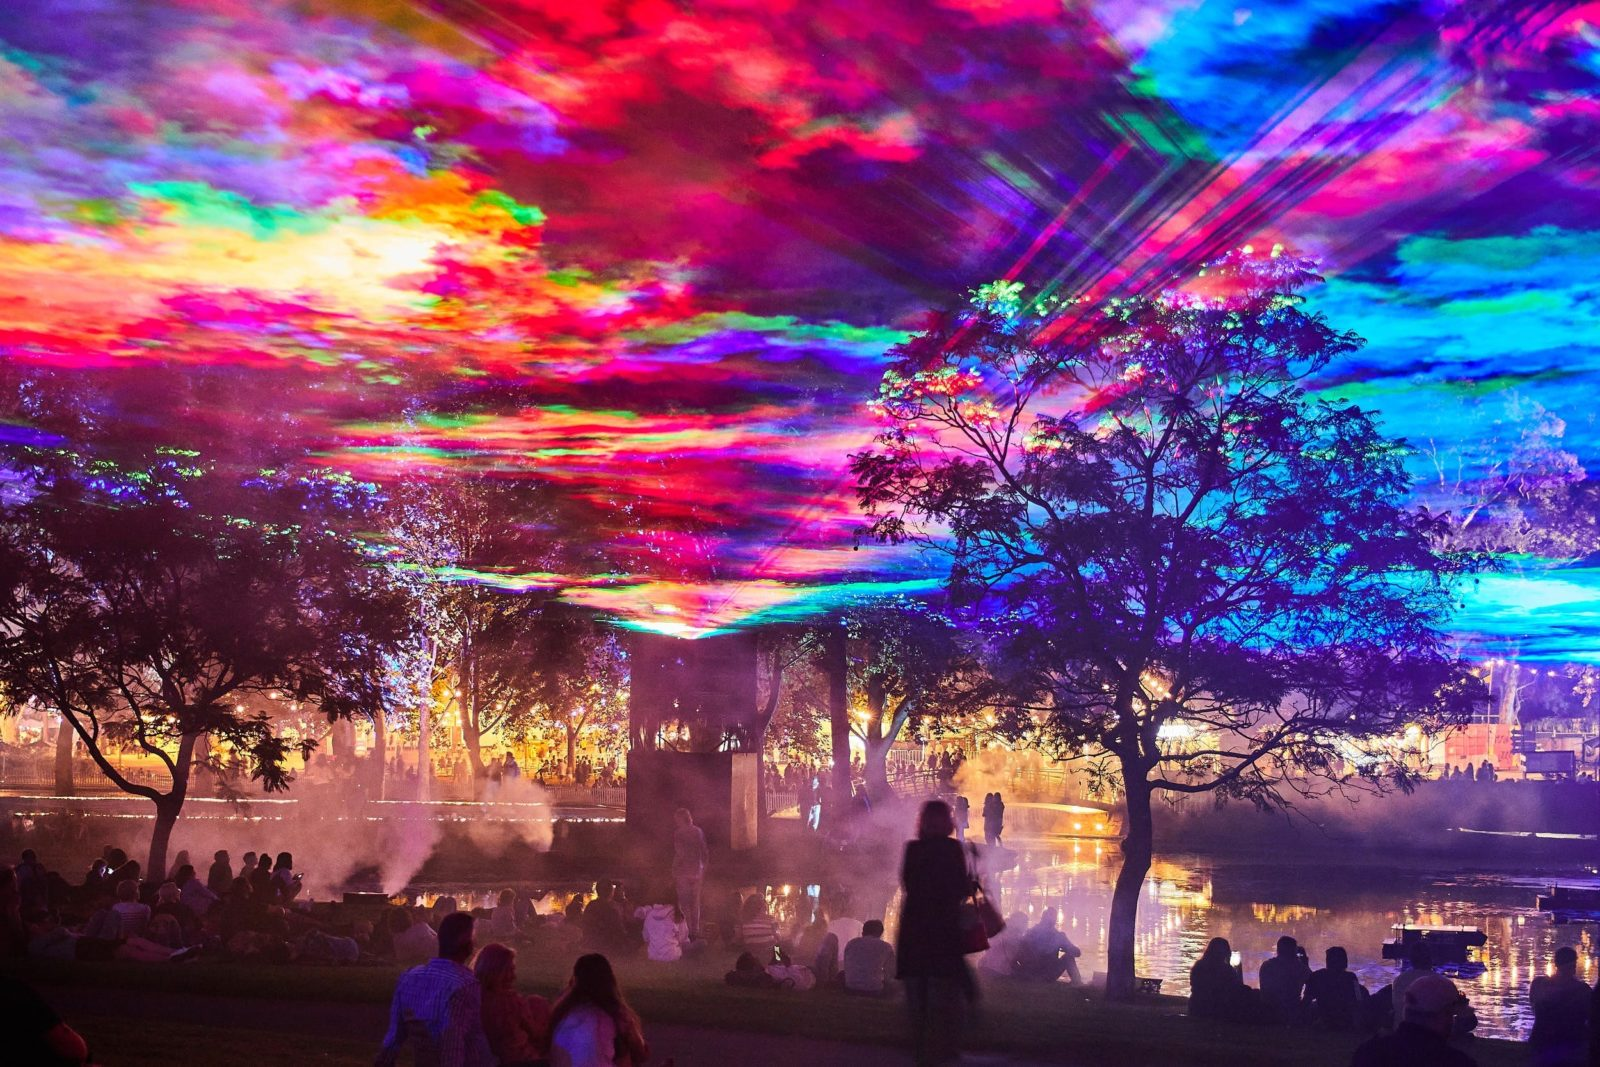 A light installation in rainbow colours is in the air over a lake in a park